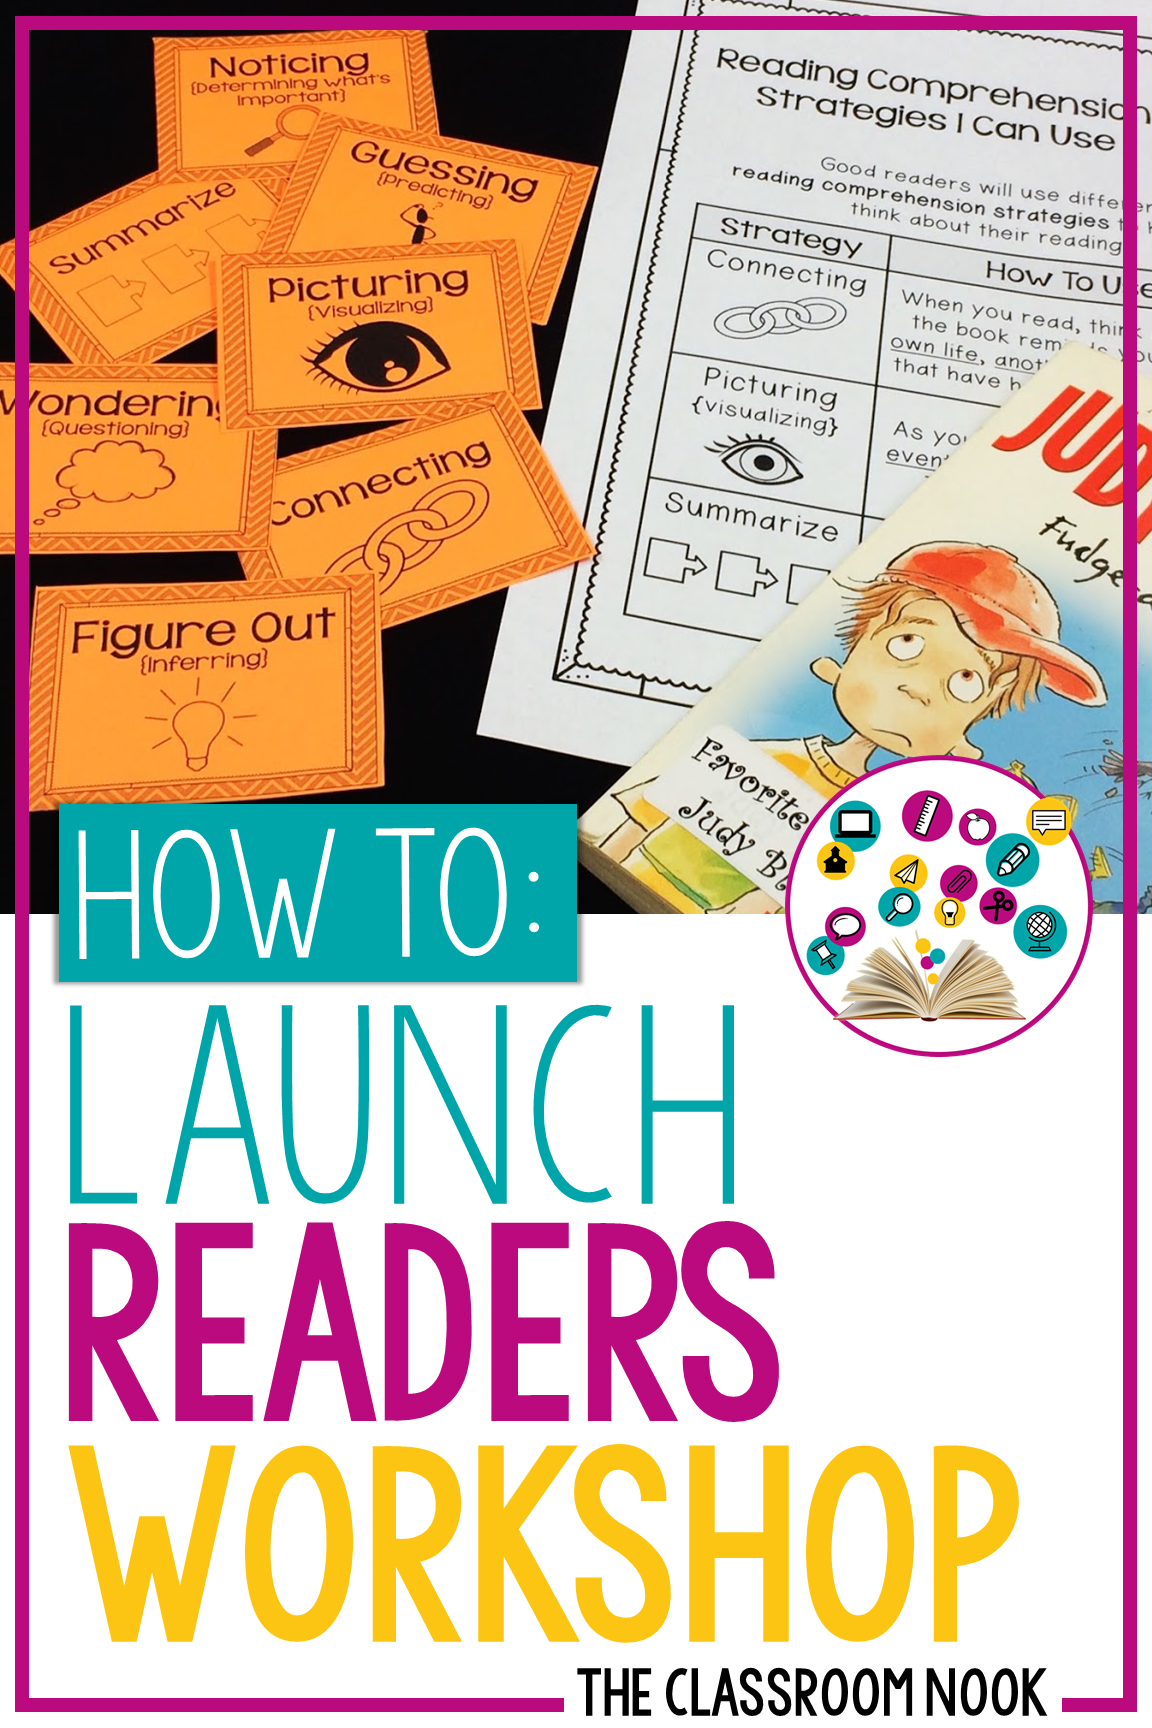 how-to-launch-readers-workshop.png